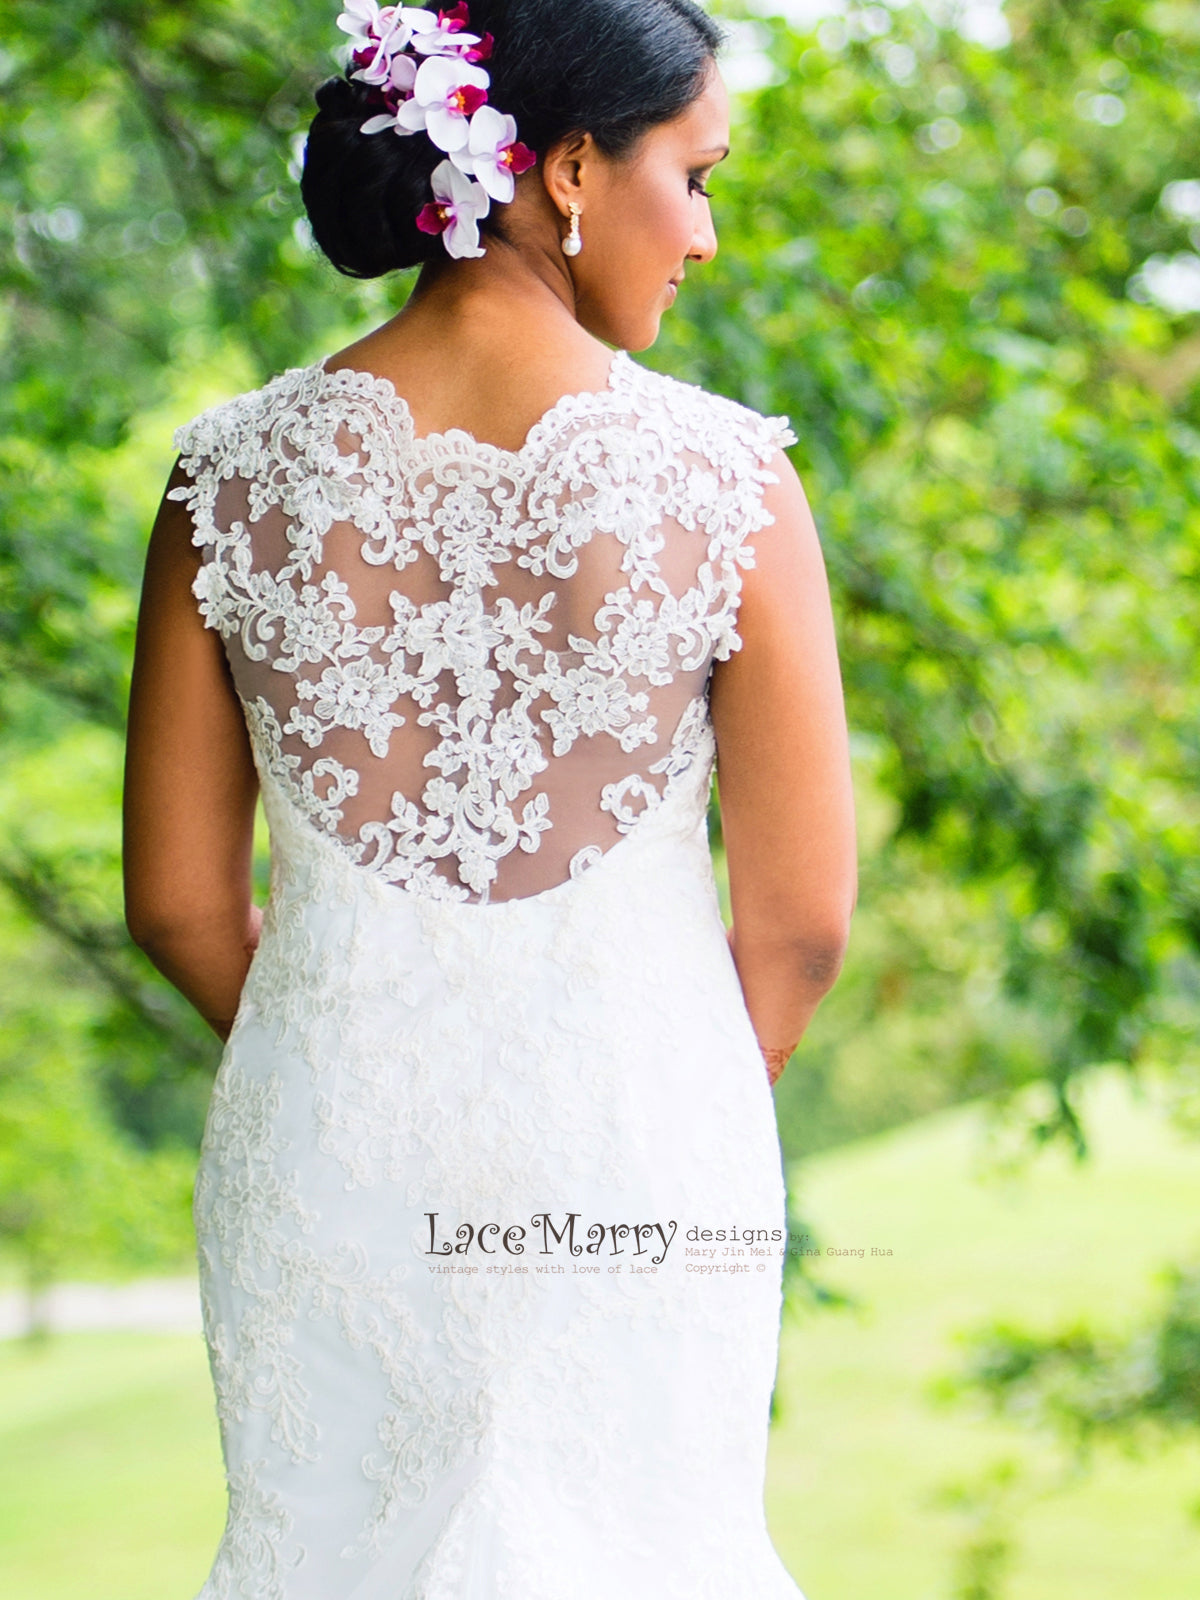 Unique Lace Wedding Dress with Dipped Illusion Neckline and Sheer Open Back Design in Fitted Trumpet Shape with Beautiful Chapel Train